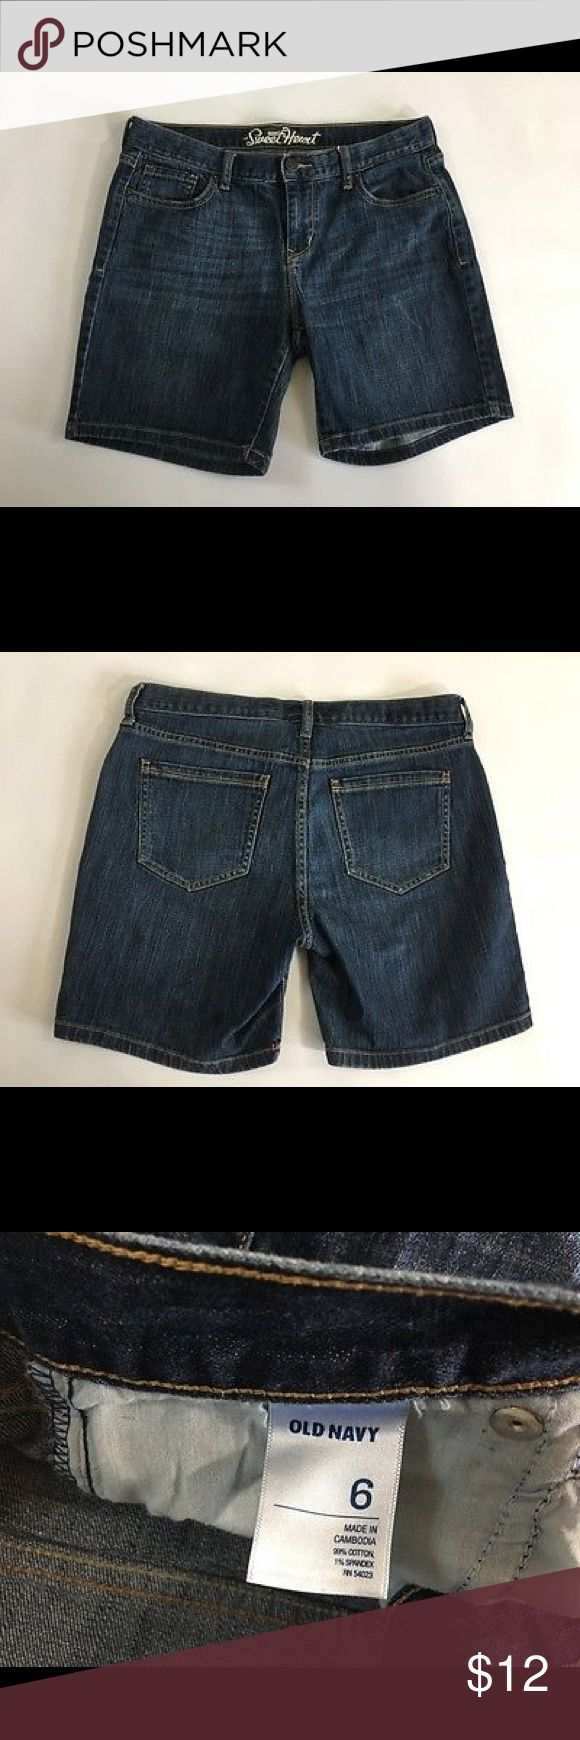 """Old Navy Women's 6 Sweetheart Denim Shorts size 6 pair of Old Navy The Sweetheart Denim Shorts. They are 99% Cotton 1% Spandex. These are in nice pre-owned condition with no stains tears or holes.  Approximate Measurements: 8.5"""" front rise 7"""" inseam 15.5"""" waist Old Navy Shorts Jean Shorts"""